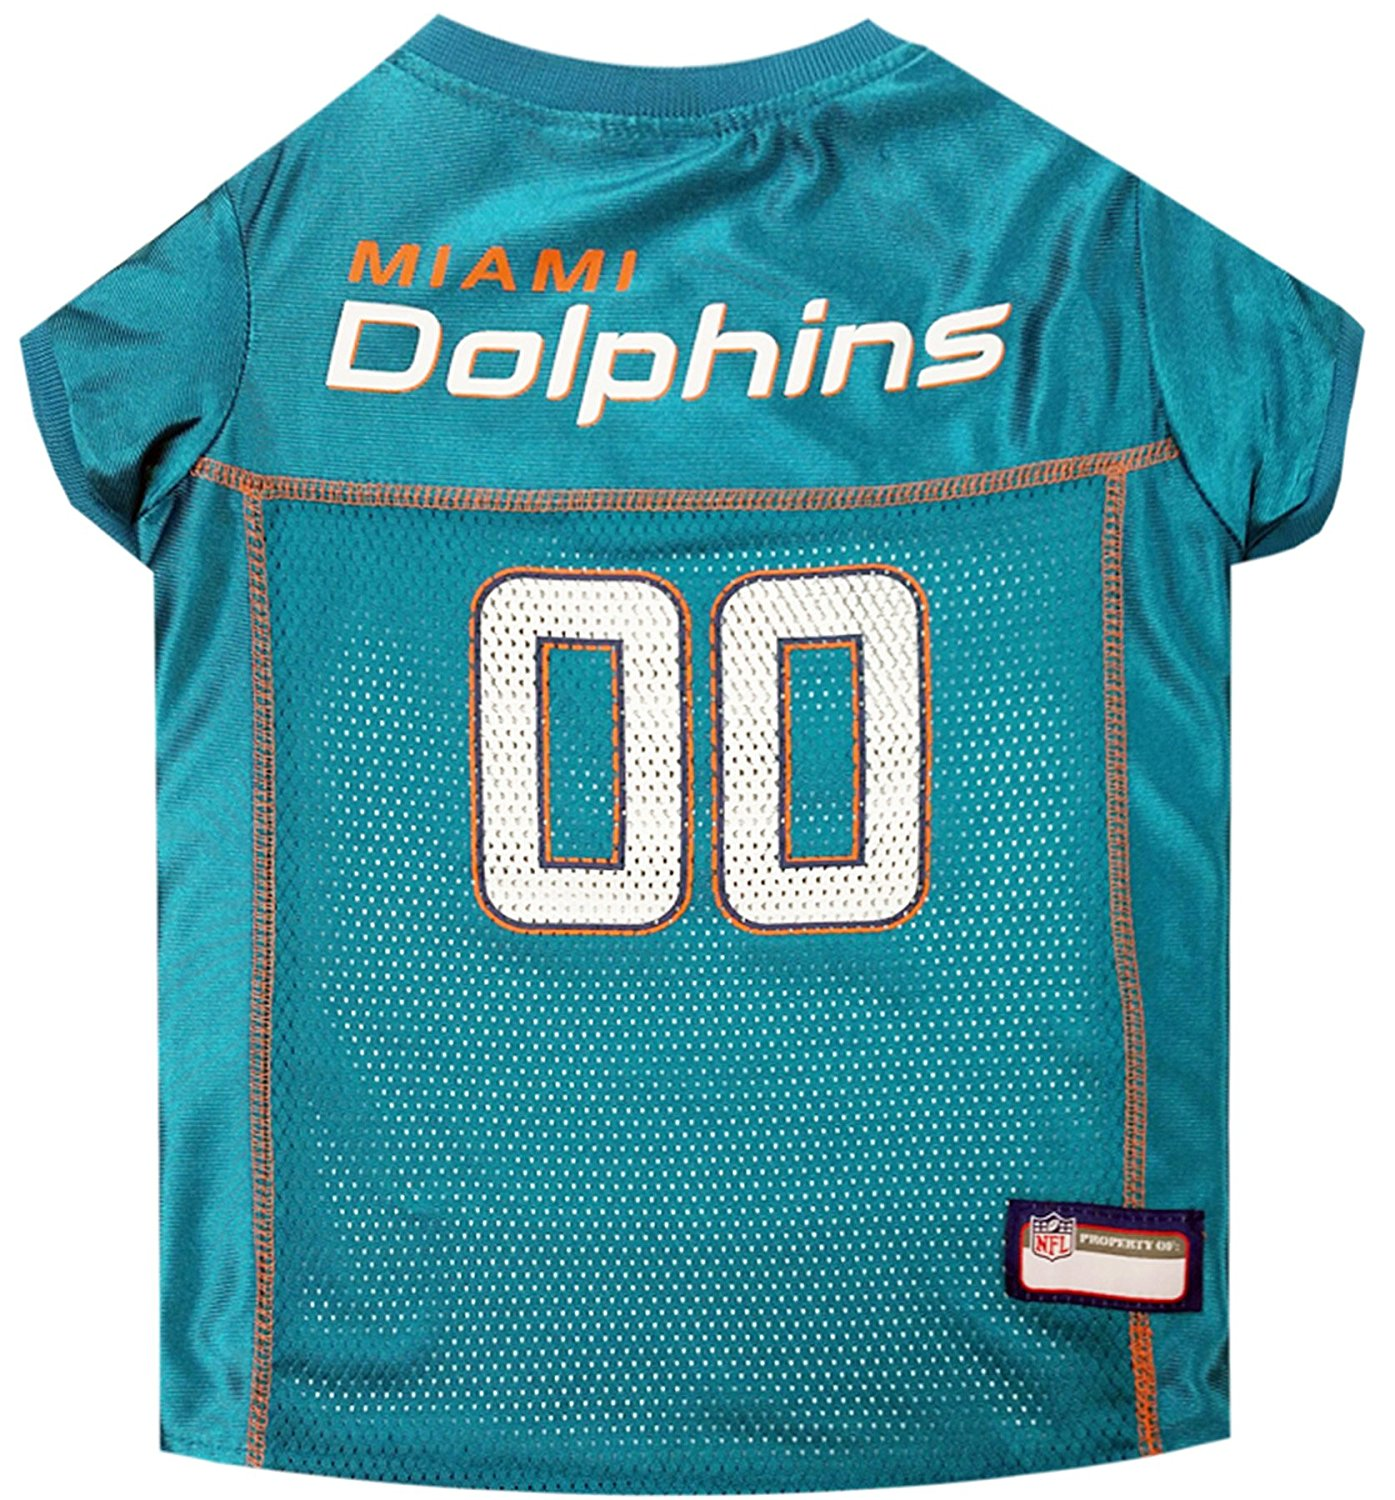 NFL-PET-JERSEY-Football-Licensed-Dog-Jersey-32-NFL -Teams-Available-Comes-in-6-Sizes-Football-Pet-Jersey-Sports-Mesh-Jersey-Dog -Jersey-Outfit-Miami-Dolphins.jpg c4c6638ca